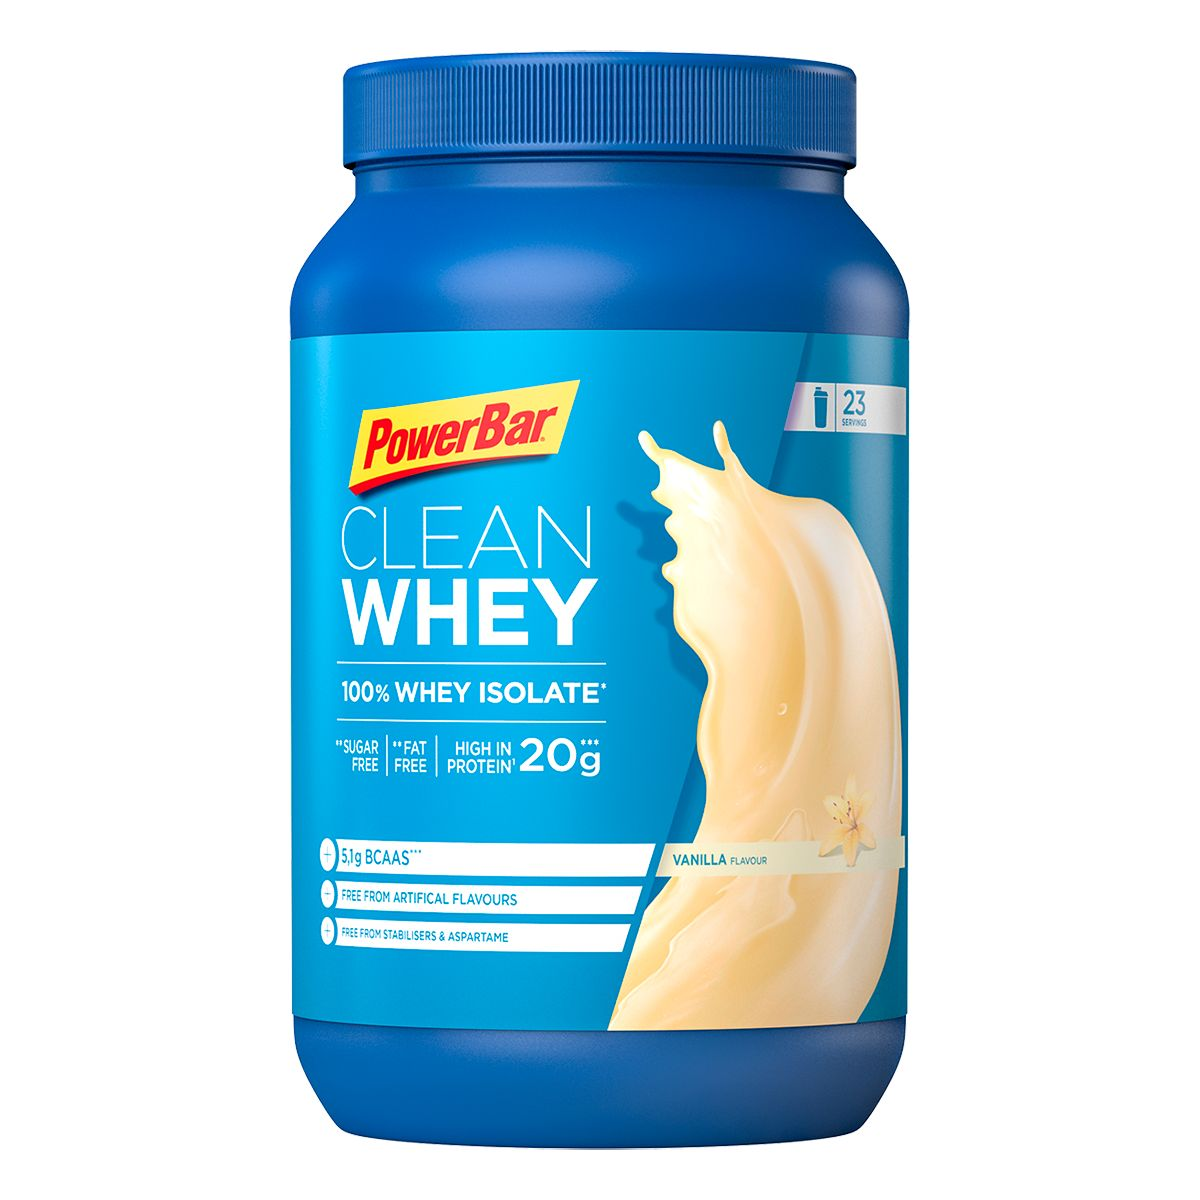 Clean Whey 100% Isolate Drink Powder